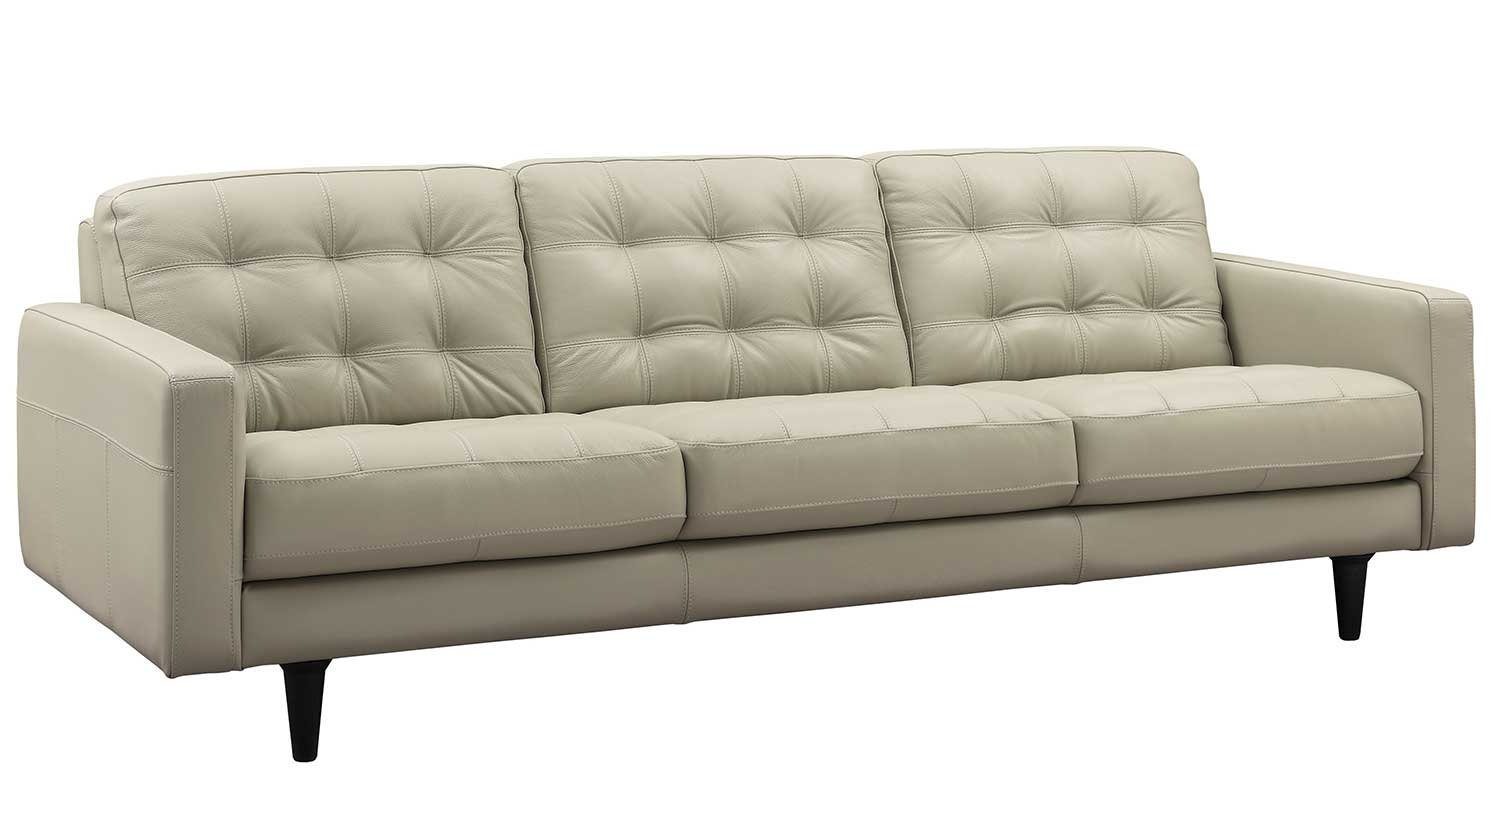 Circle Furniture Fairfield Sofa